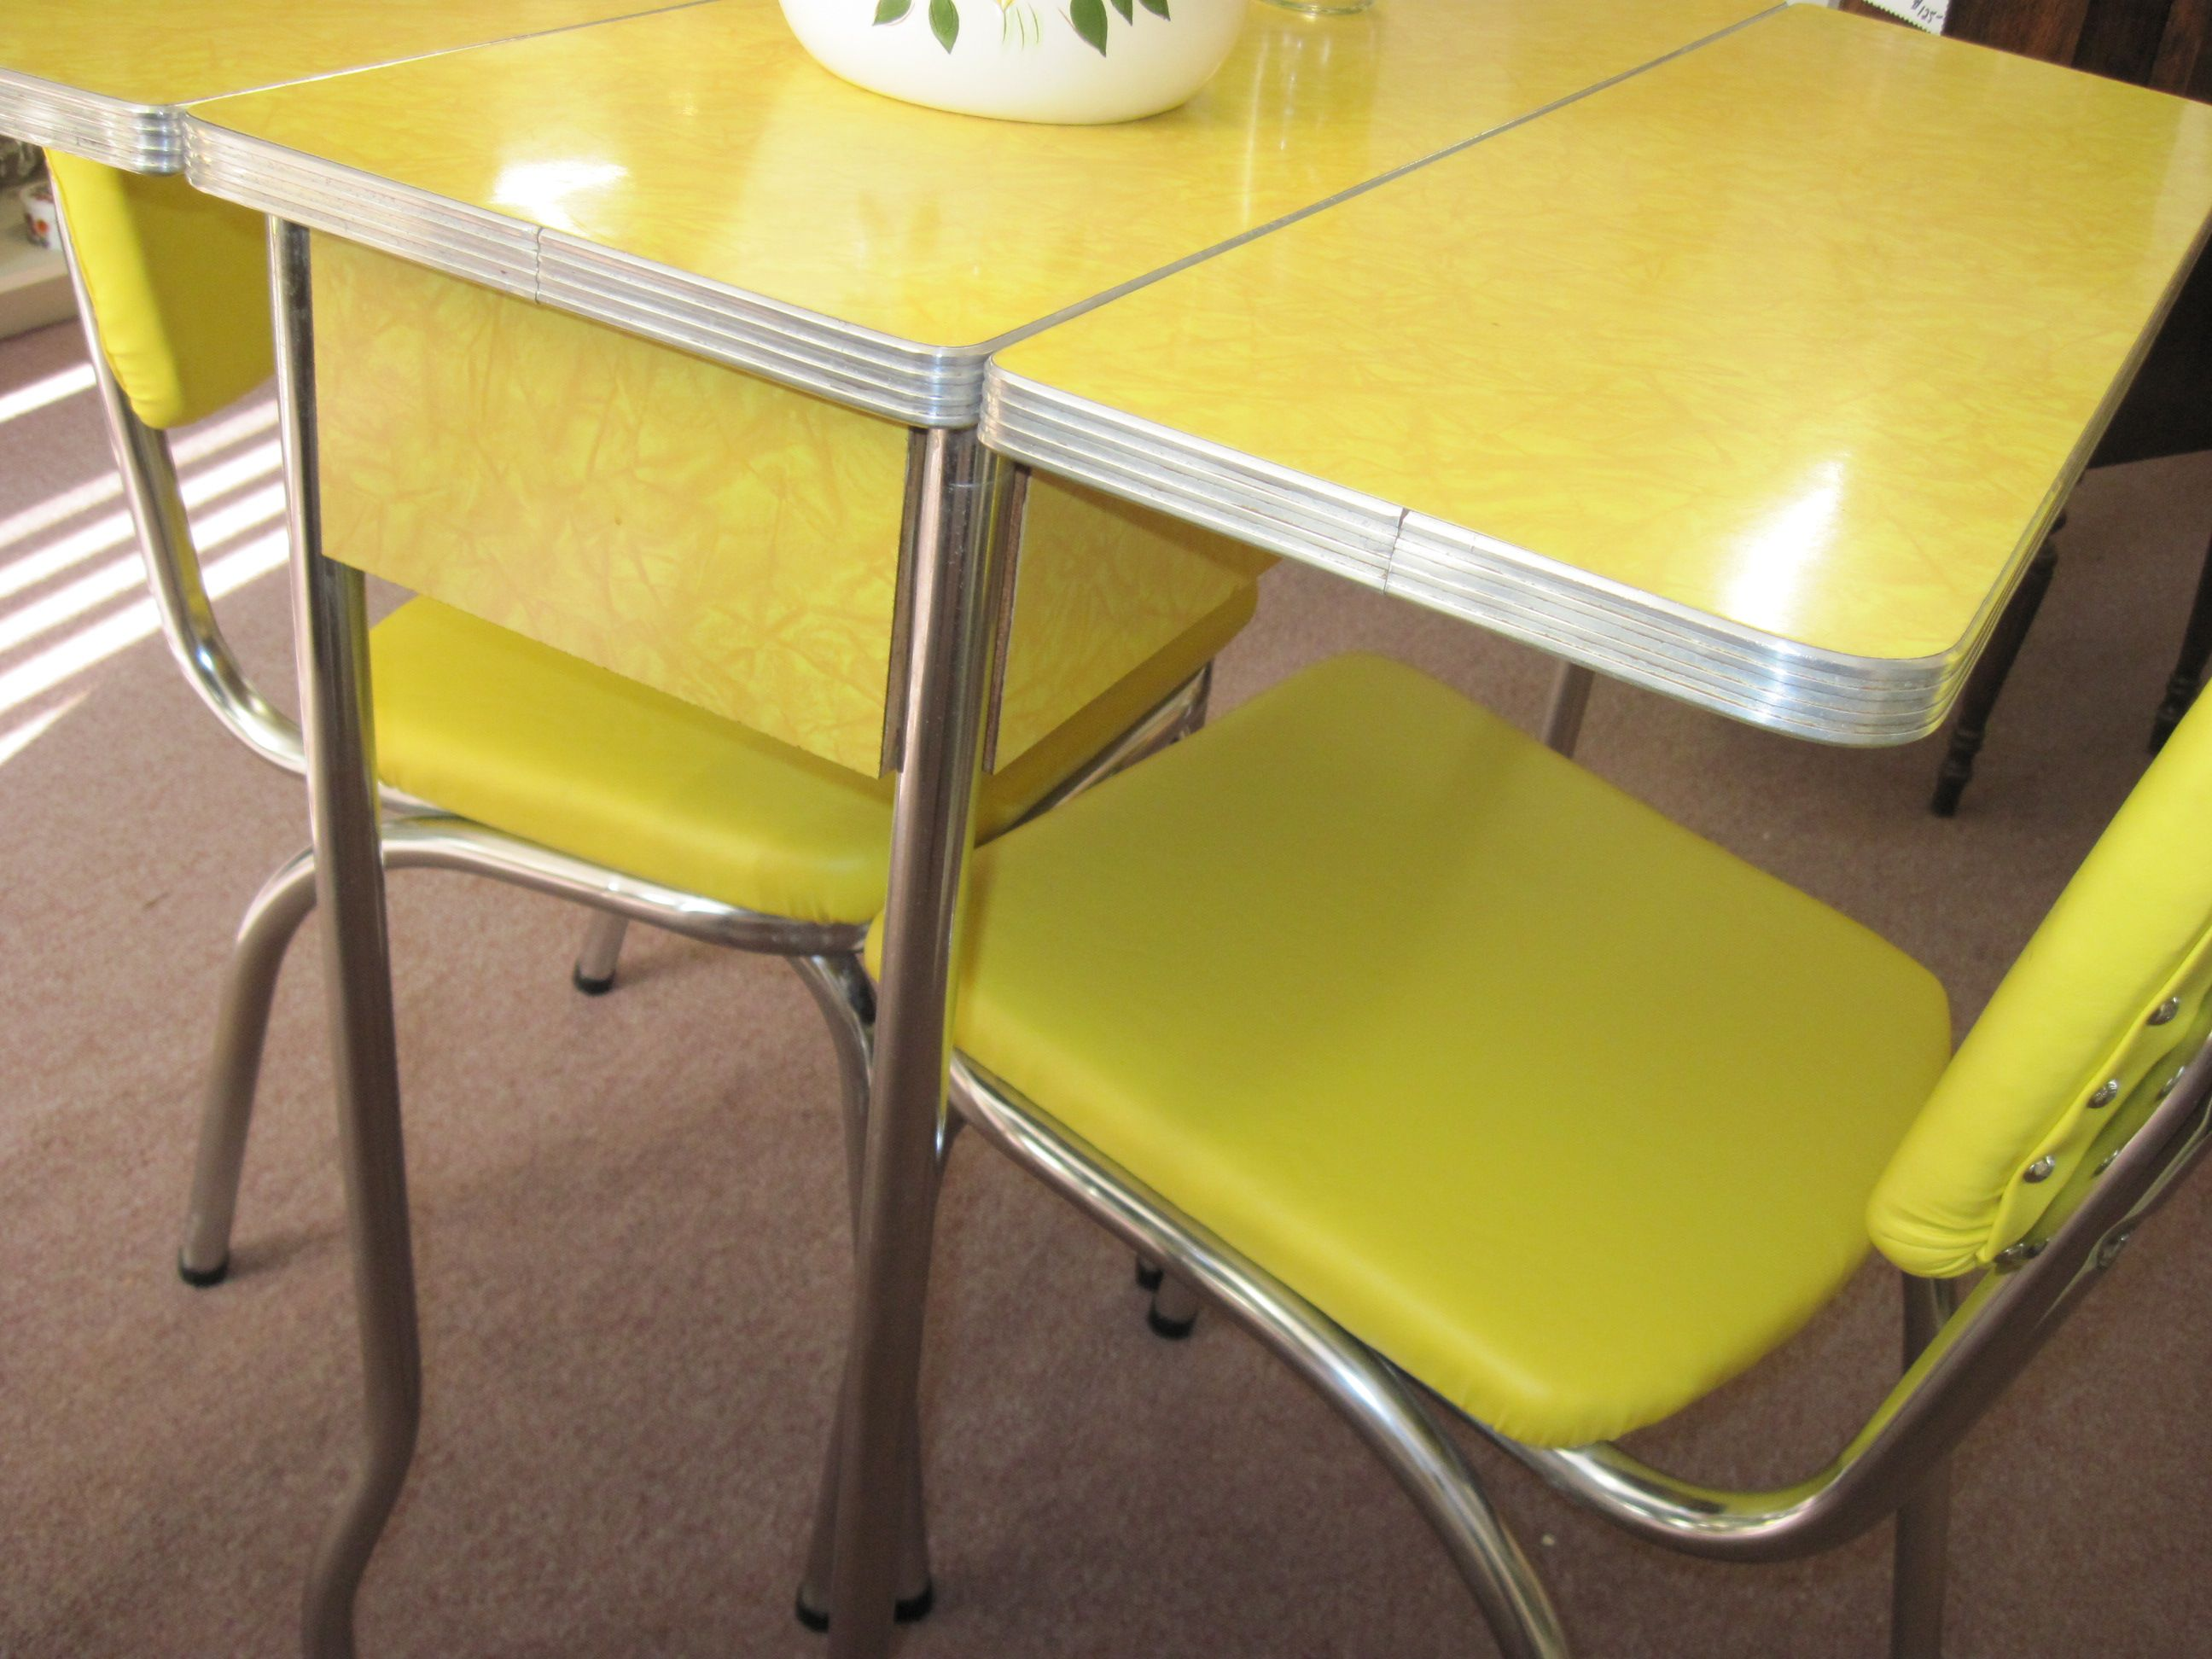 s kitchen table retro drop leaf kitchen tables and chairs Yellow s Cracked Ice Formica Table